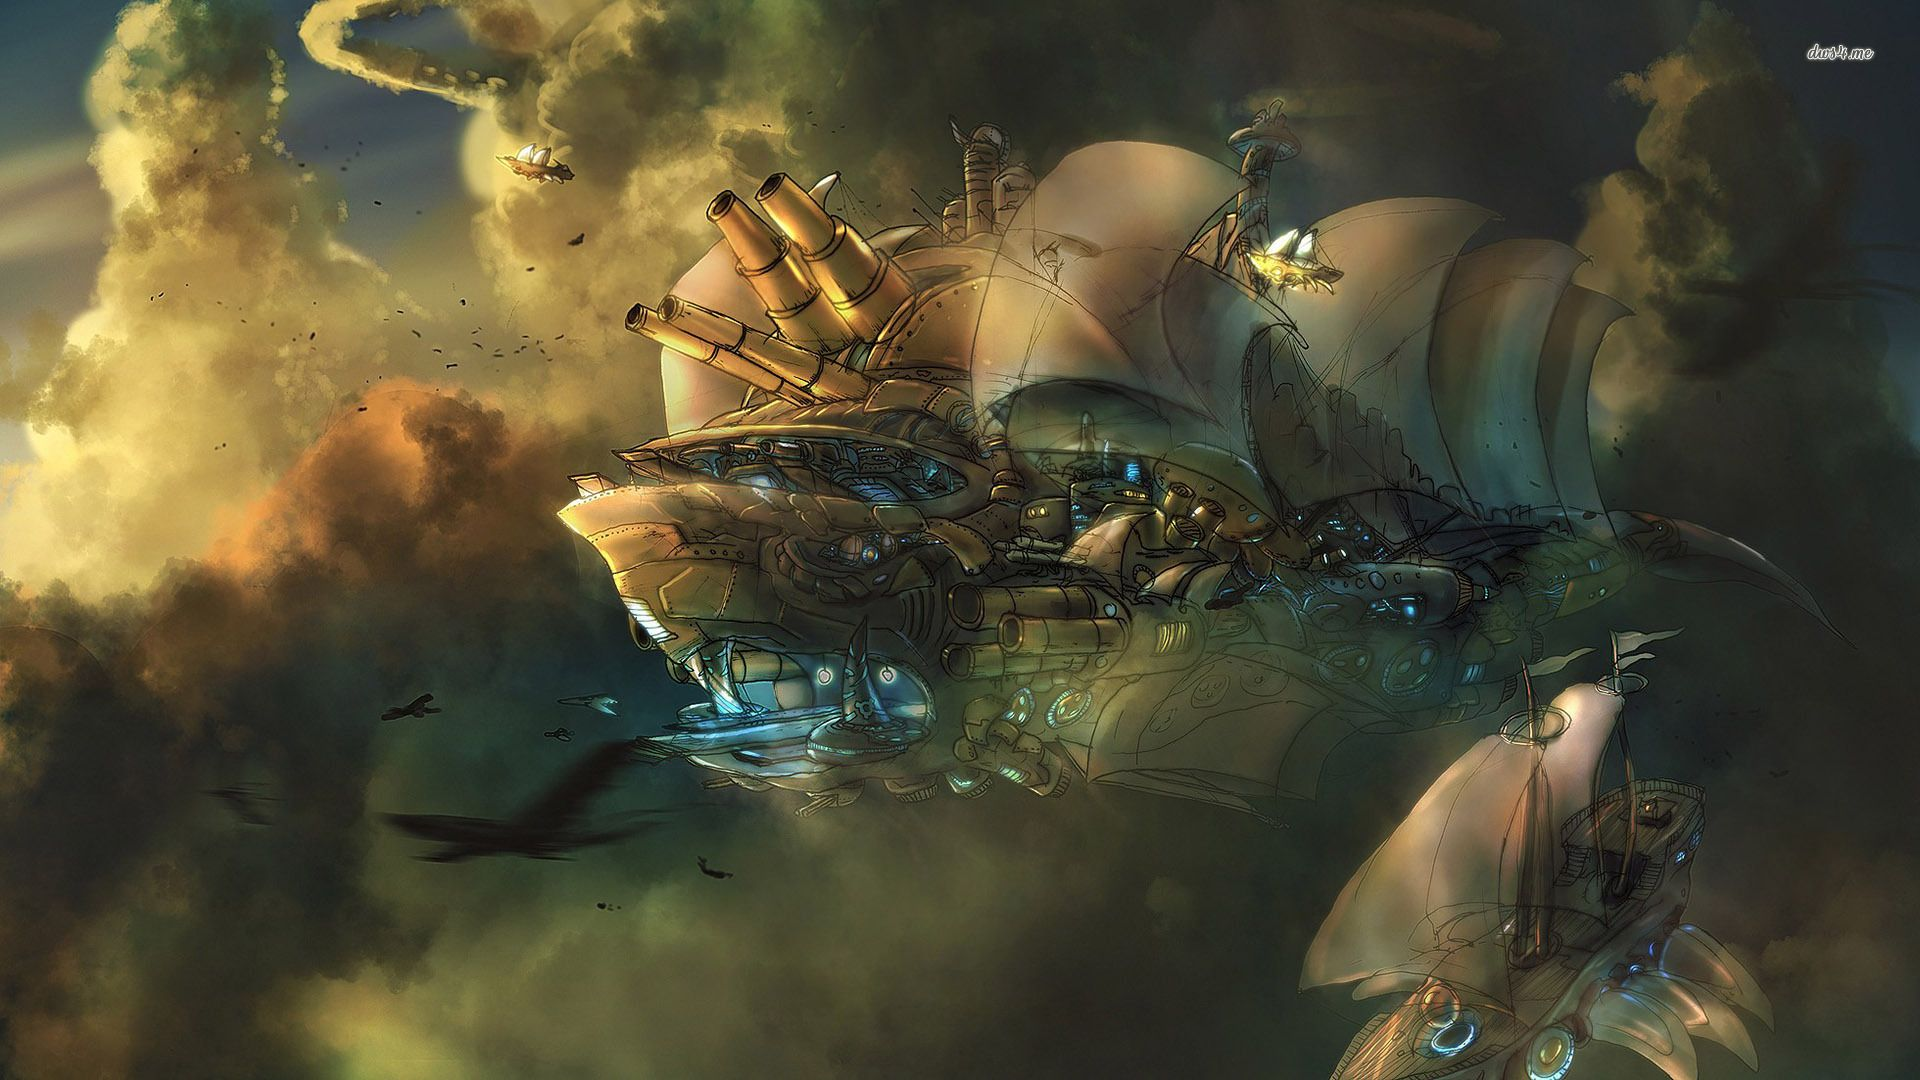 76 Steampunk Hd Wallpapers Backgrounds Wallpaper Abyss